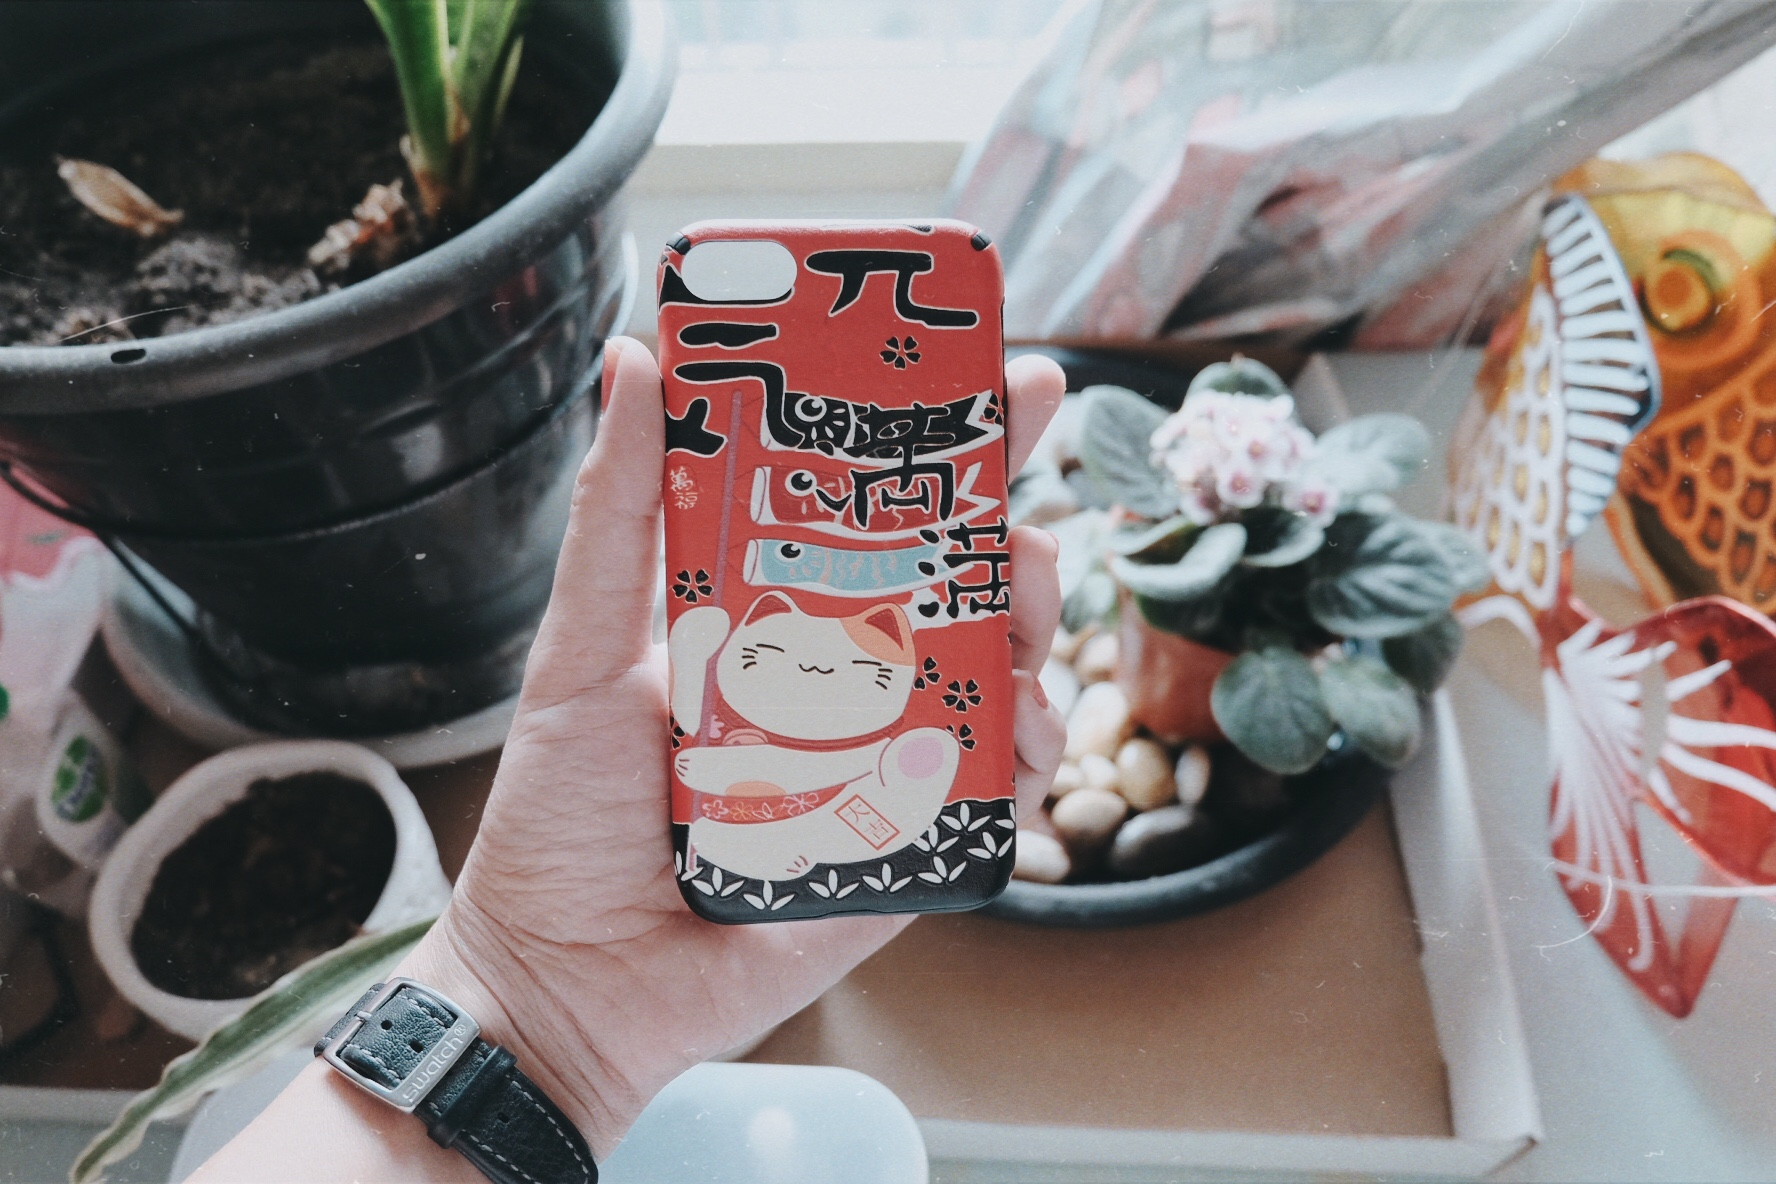 a phone casing i'm using these days, it has such a bright red color. love it! please ignore my striving plants, keeping them alive is such a challenge..